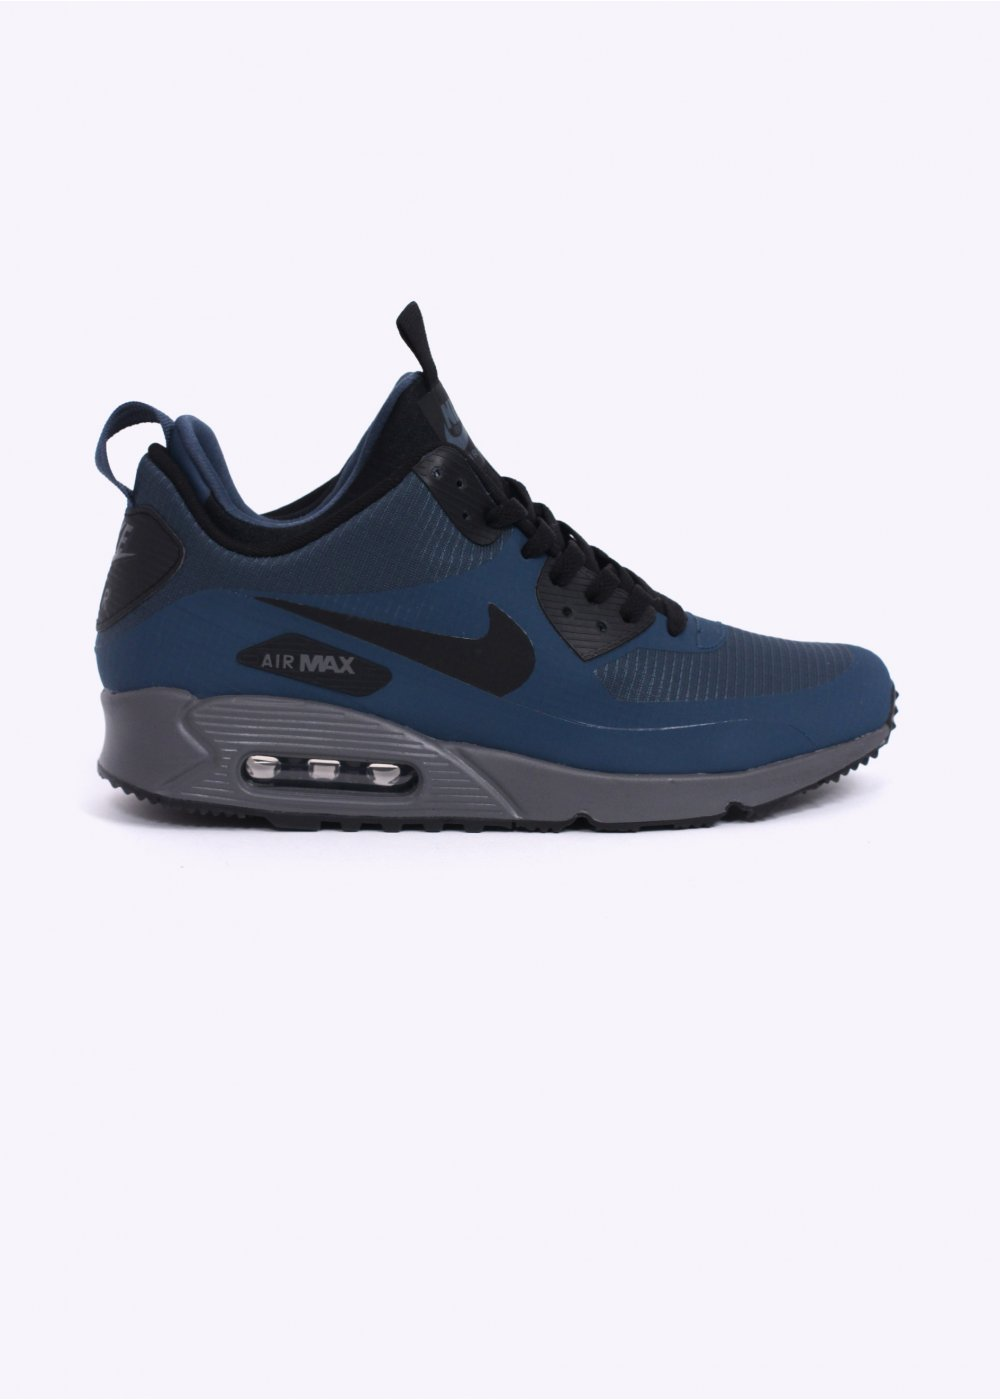 dirt cheap wholesale dealer incredible prices Nike Footwear Air Max 90 Mid Winter Sneakerboots - Squadron Blue / Black